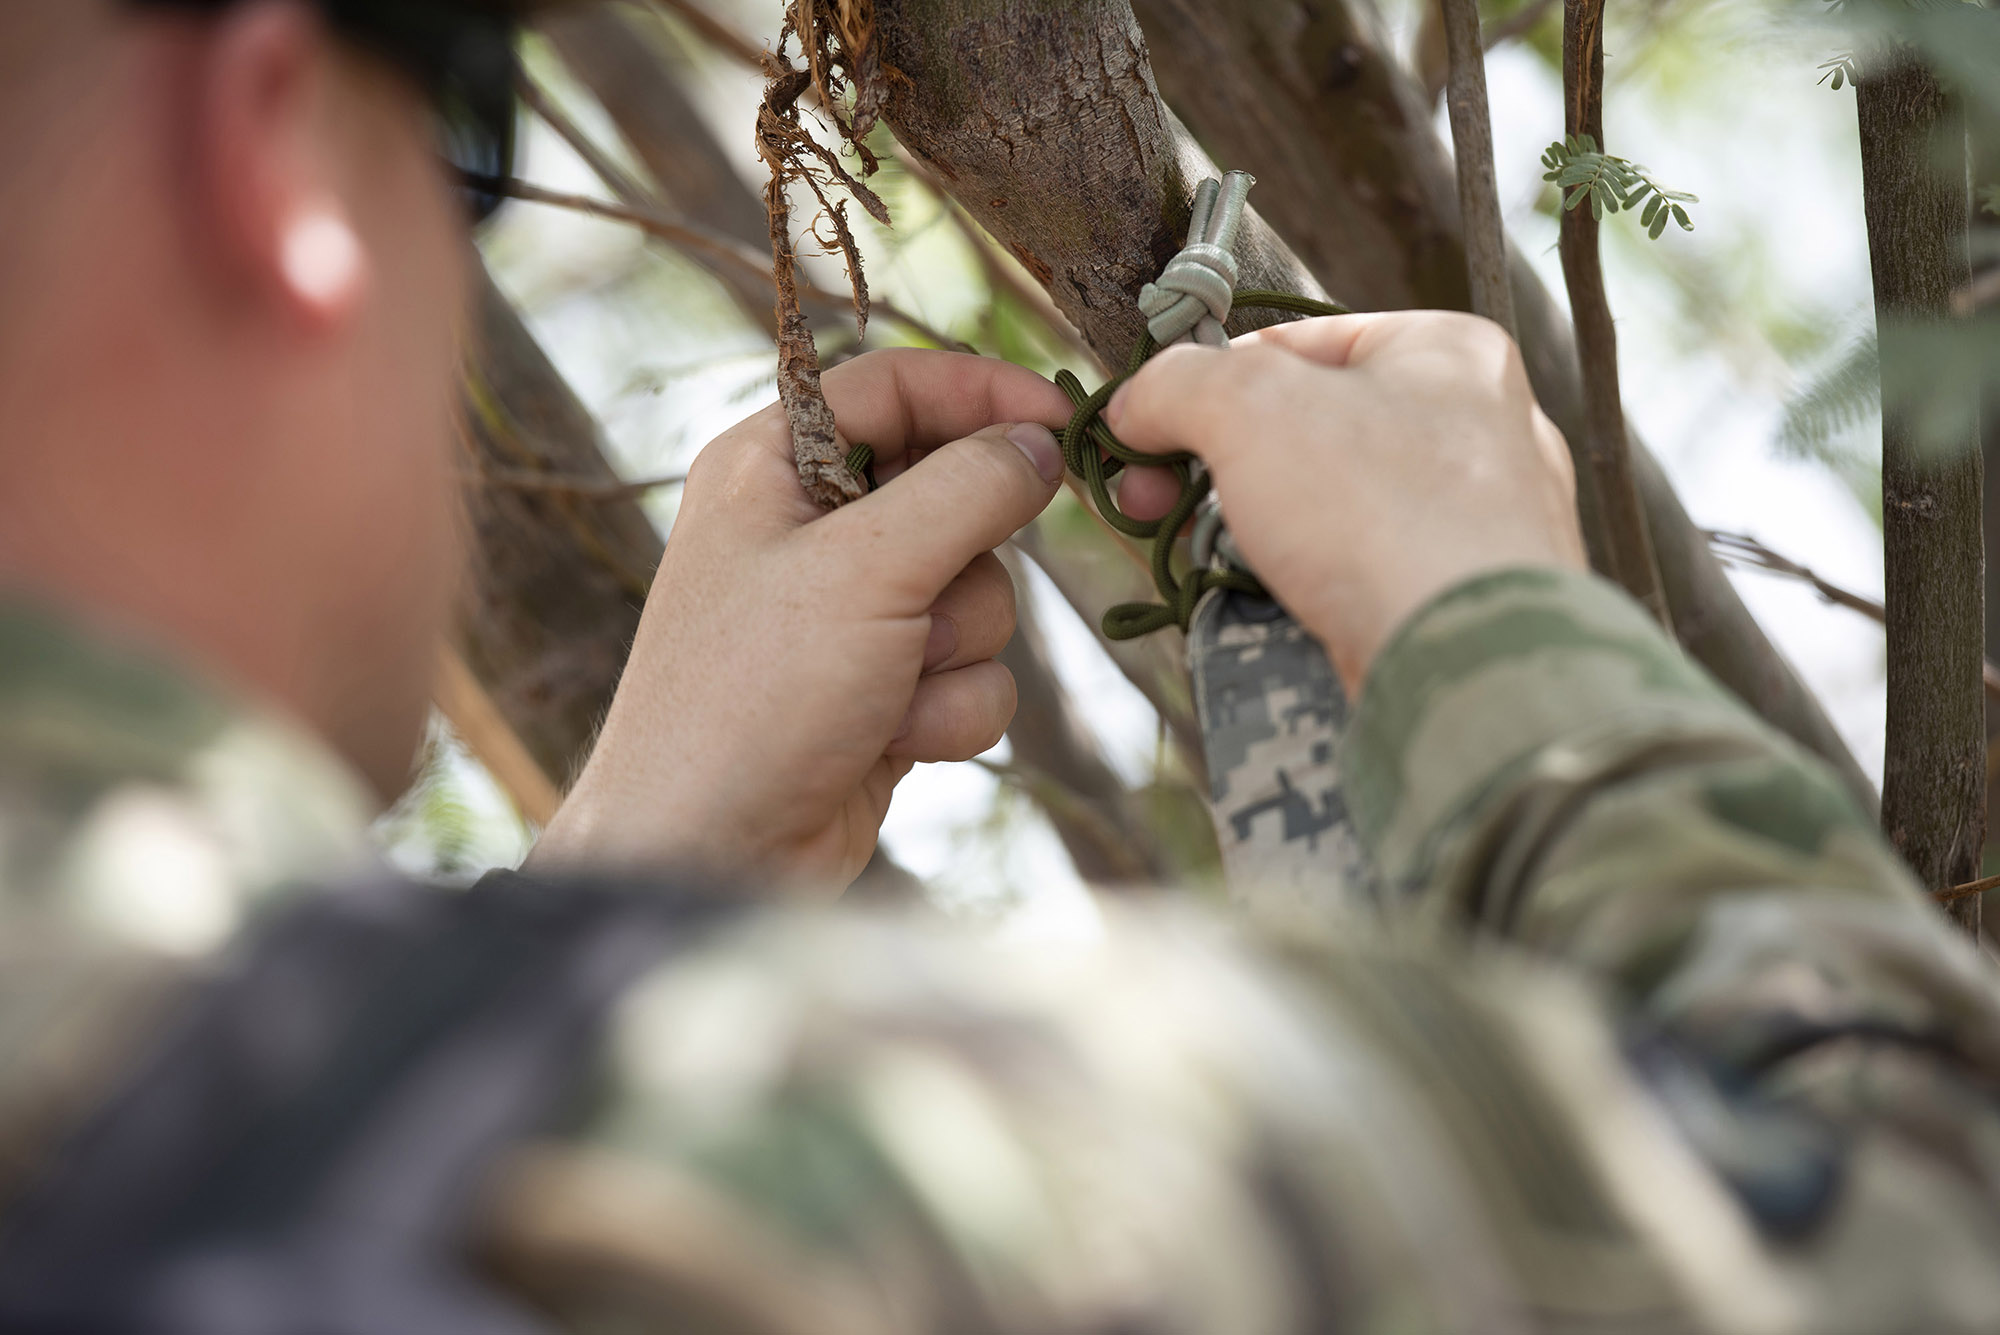 U.S. Army Spec. Killian Tooke, a radar repairer with 3rd Battalion, 133rd Field Artillery Regiment, Texas National Guard, practices tying various types of friction knots during survival skills training on Camp Lemonnier, Djibouti, Oct. 13, 2018. During this training, Tooke completed various tasks such as constructing a shelter, finding alternative water sources and signaling for rescue. (U.S. Air National Guard photo by Master Sgt. Sarah Mattison)